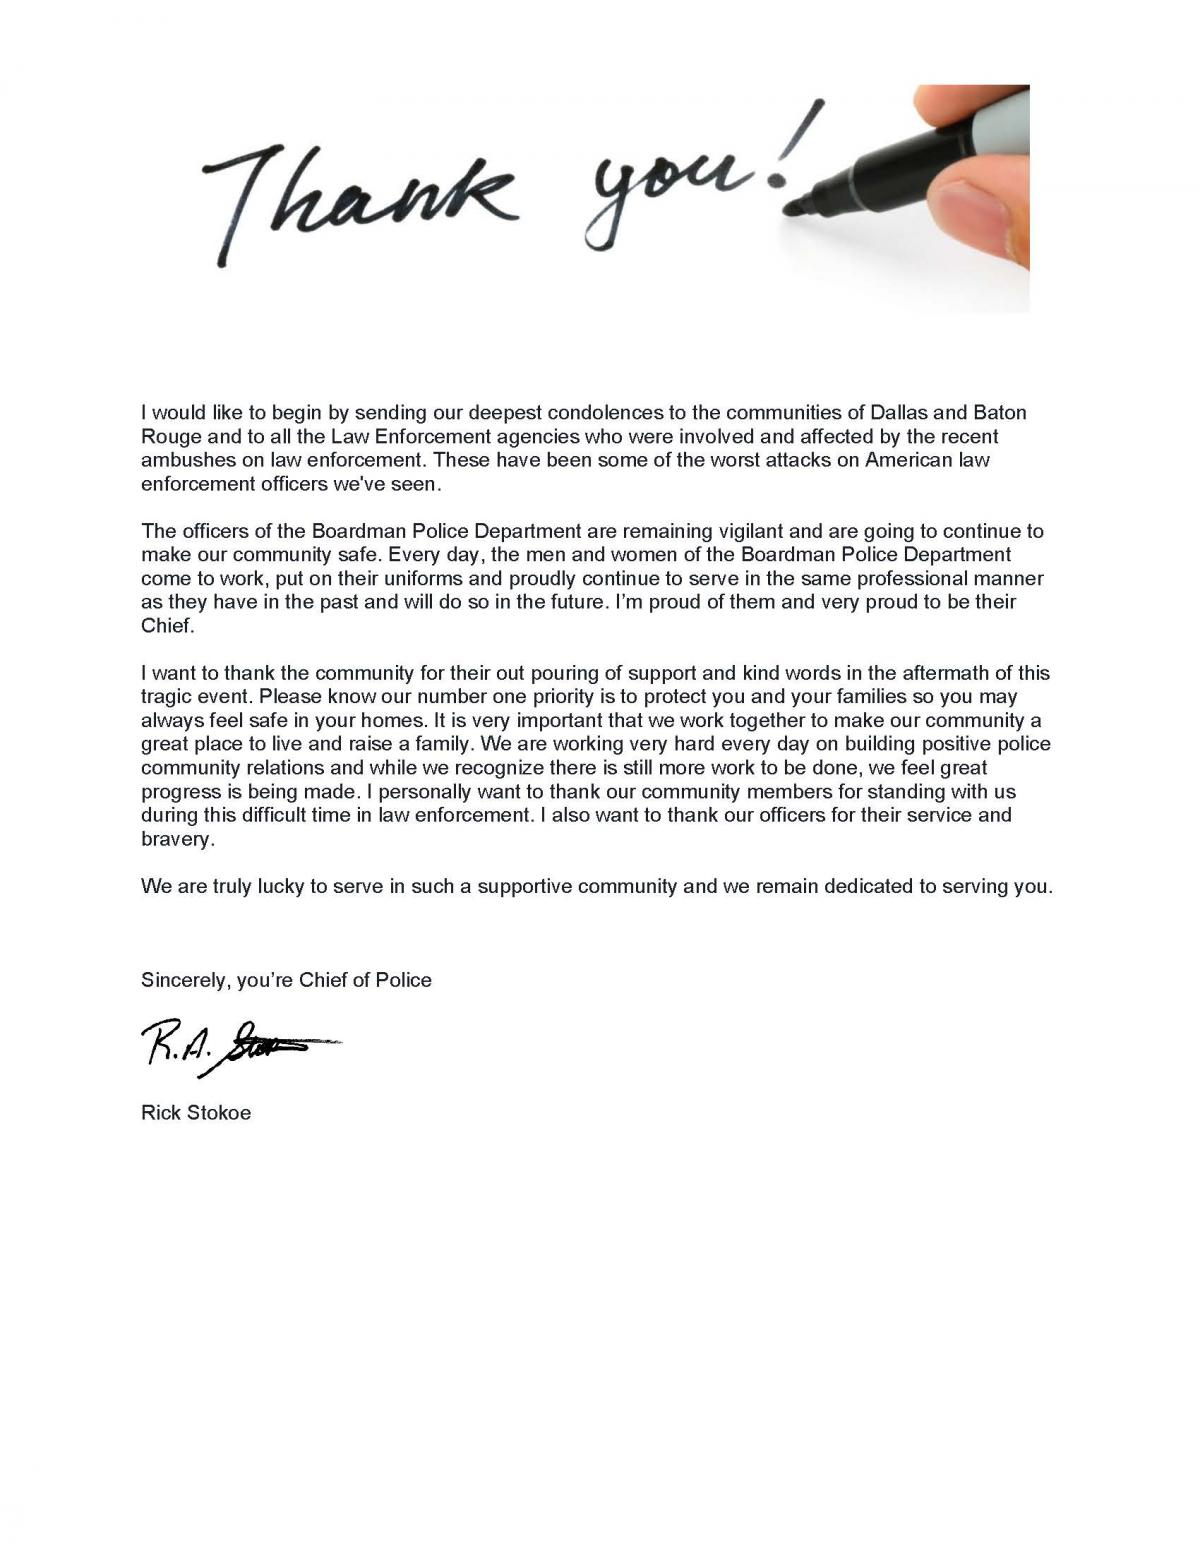 A Letter Of Thank You From The Chief Of Police  The City Of